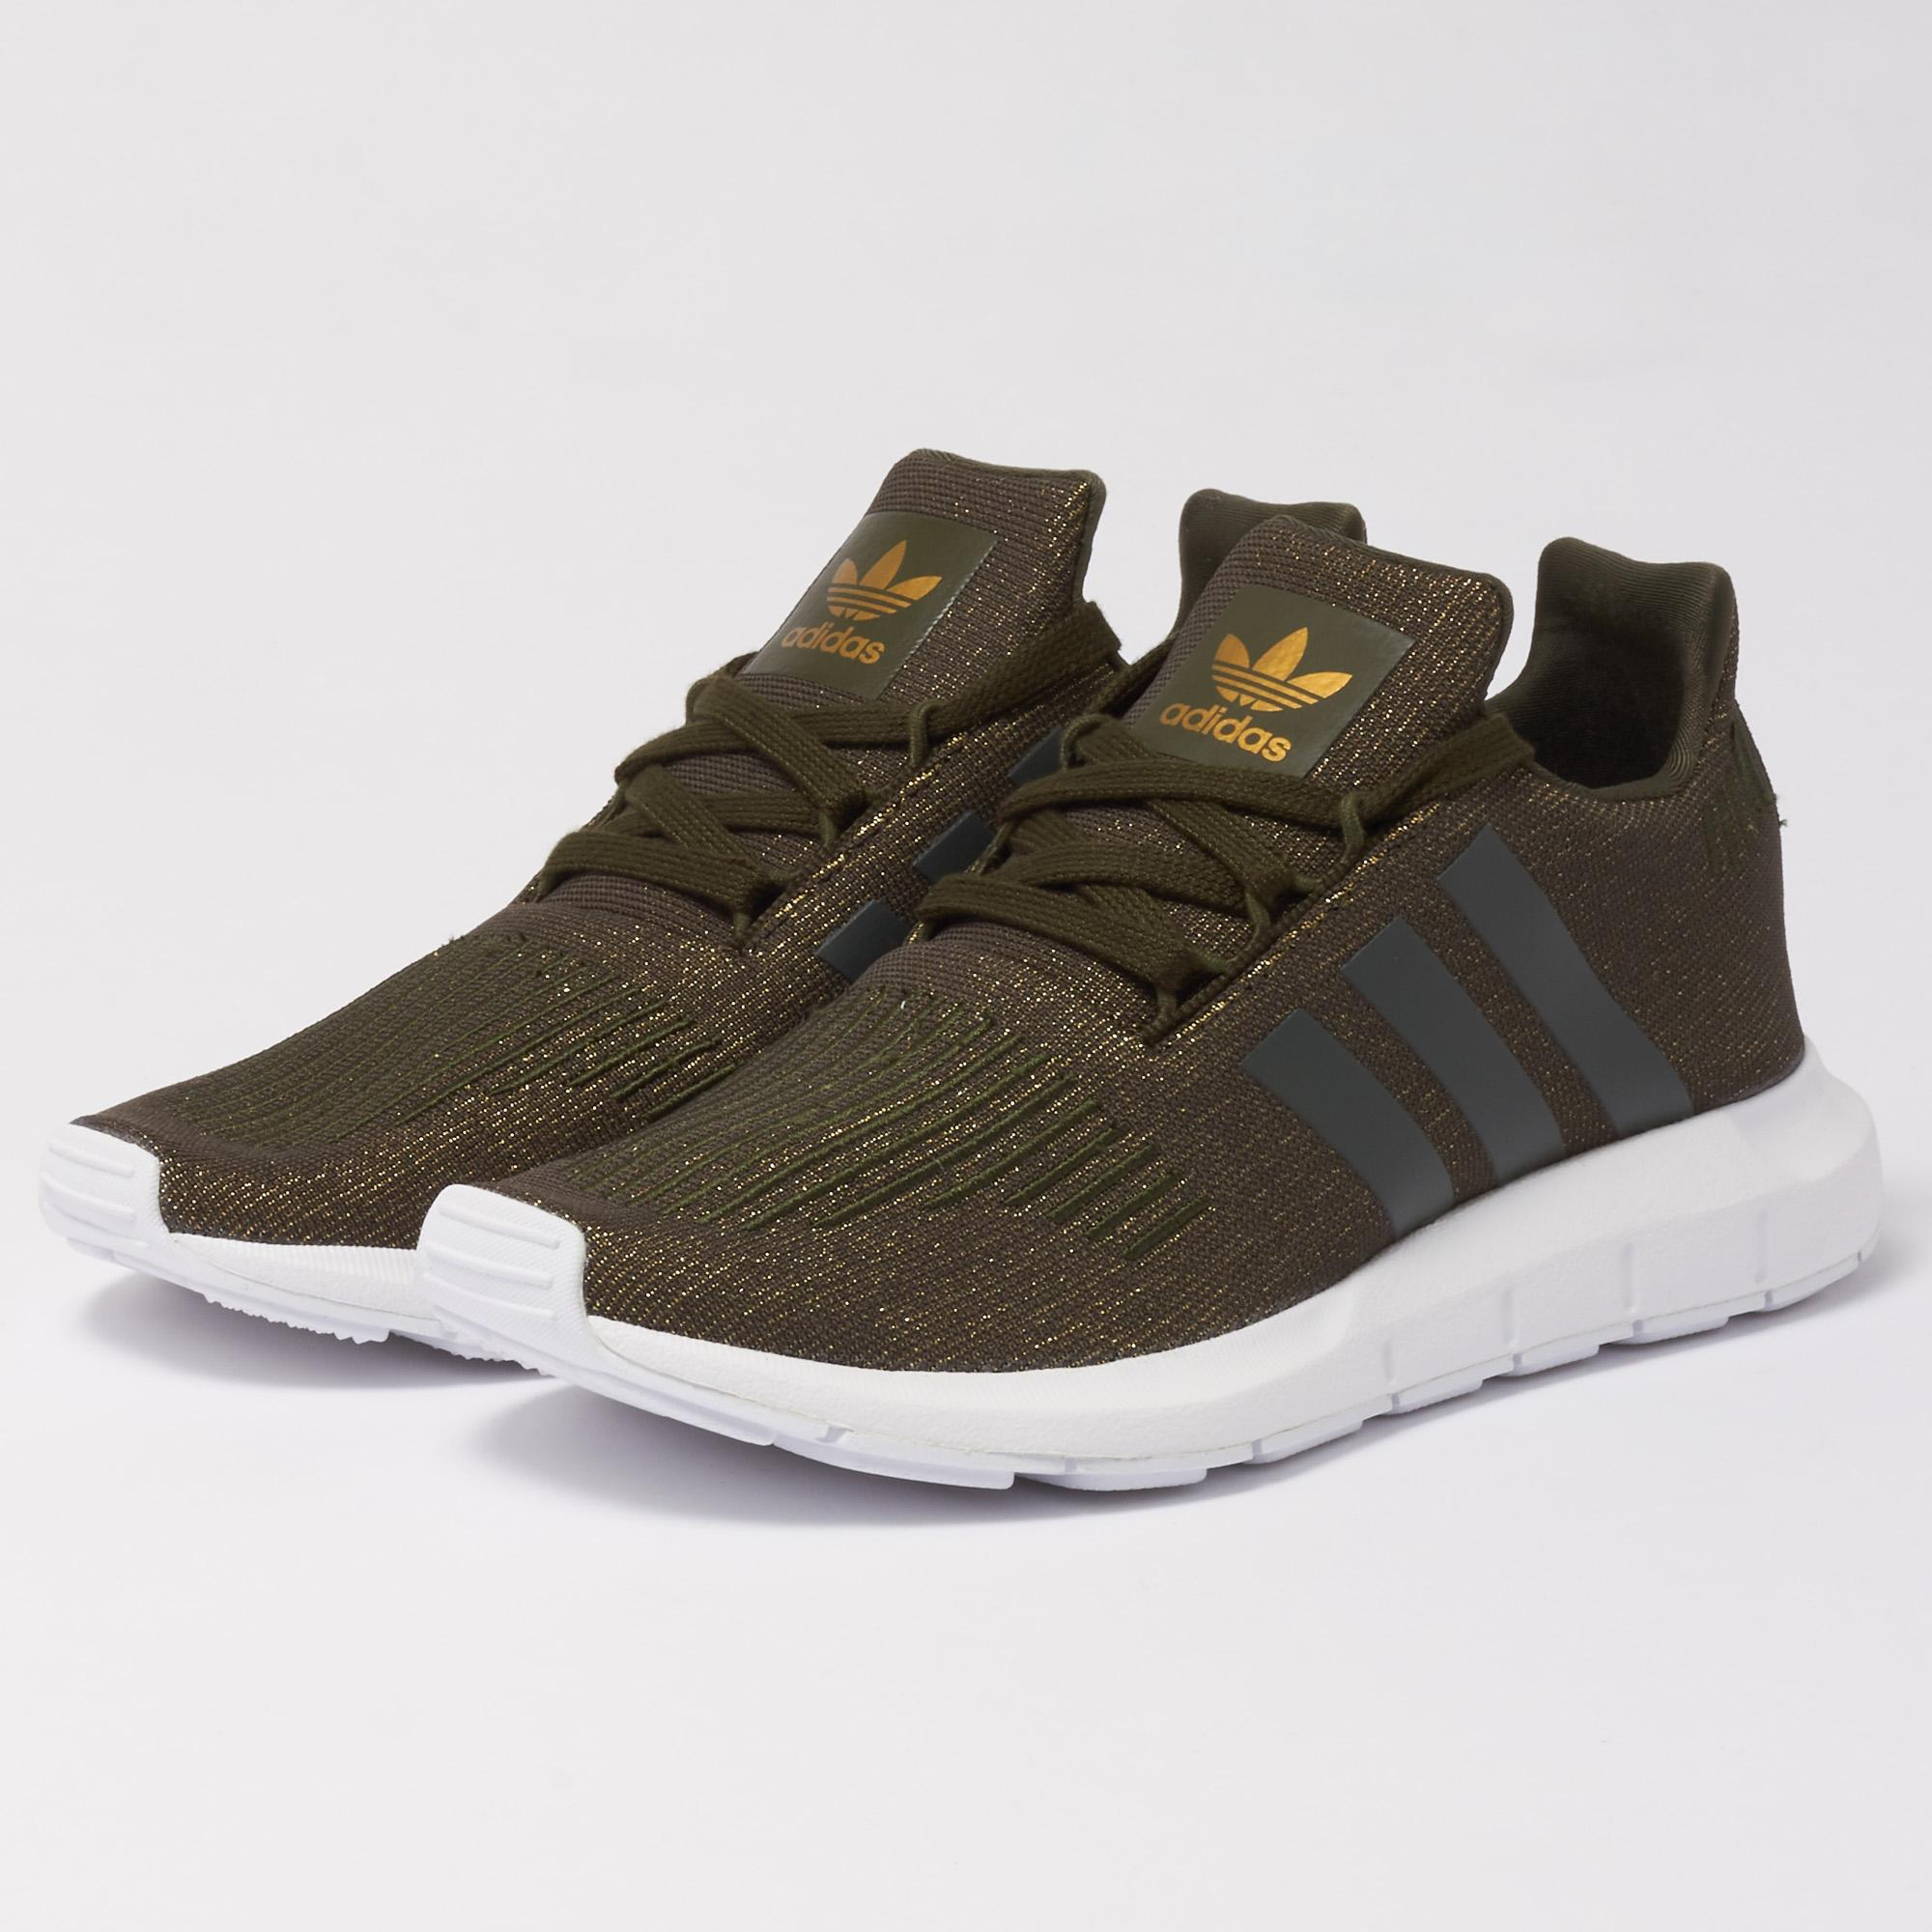 5bc0cb50e adidas Originals Wmns Swift Run Trainers - Night Cargo in Green for ...